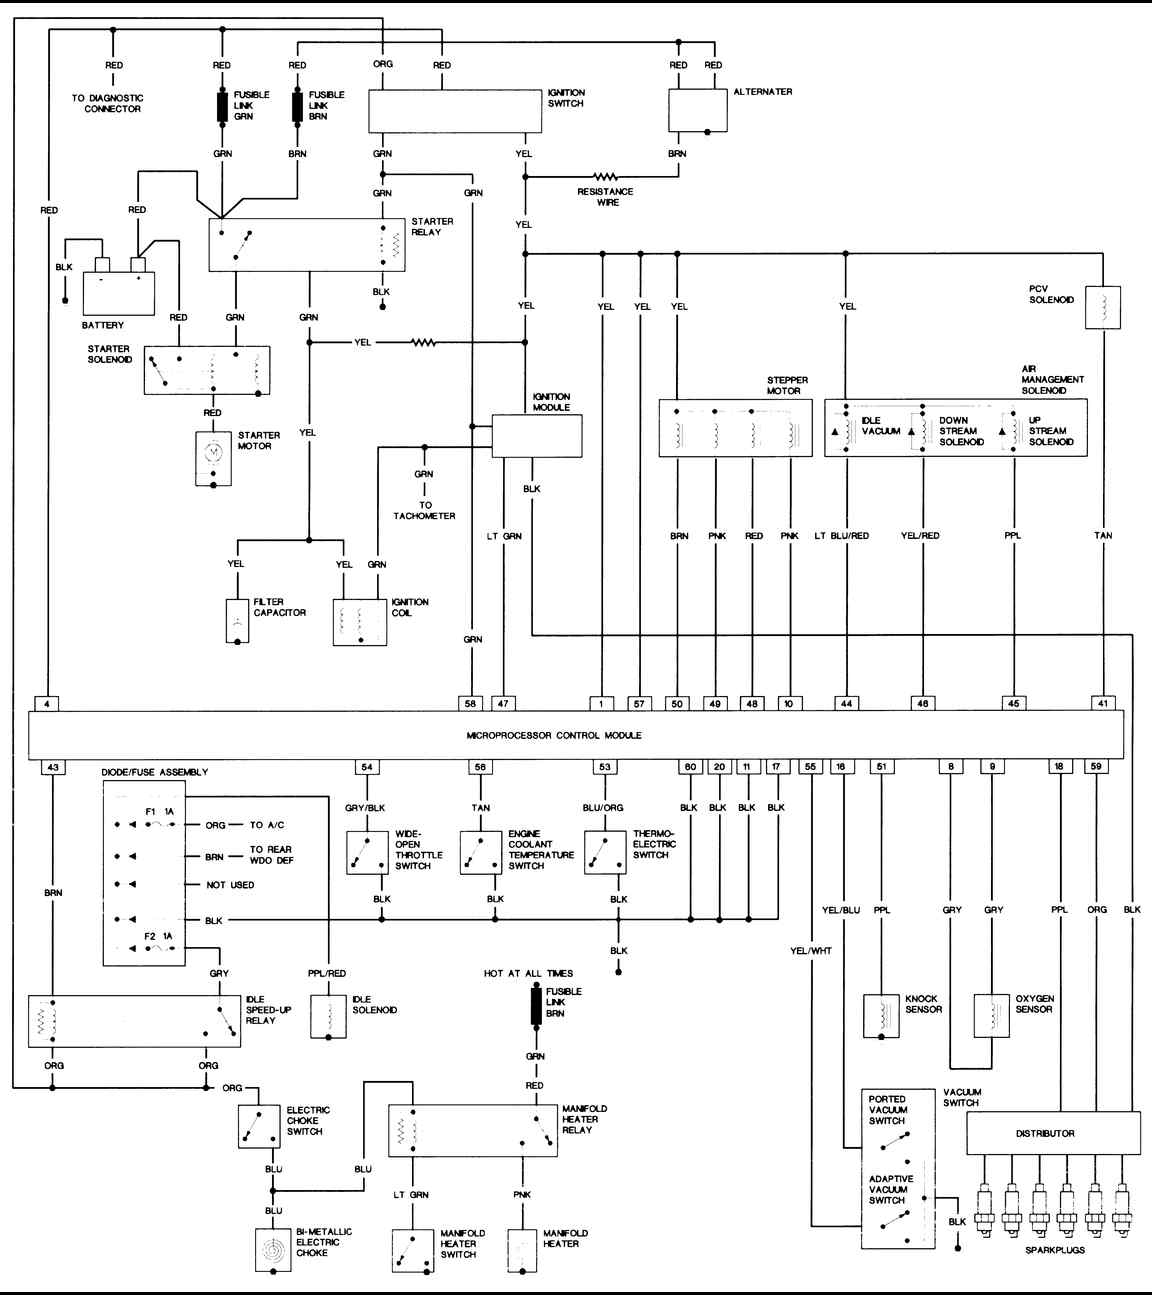 1988 jeep wrangler engine wiring diagram 1988 1988 jeep wiring diagrams index automechanic on 1988 jeep wrangler engine wiring diagram